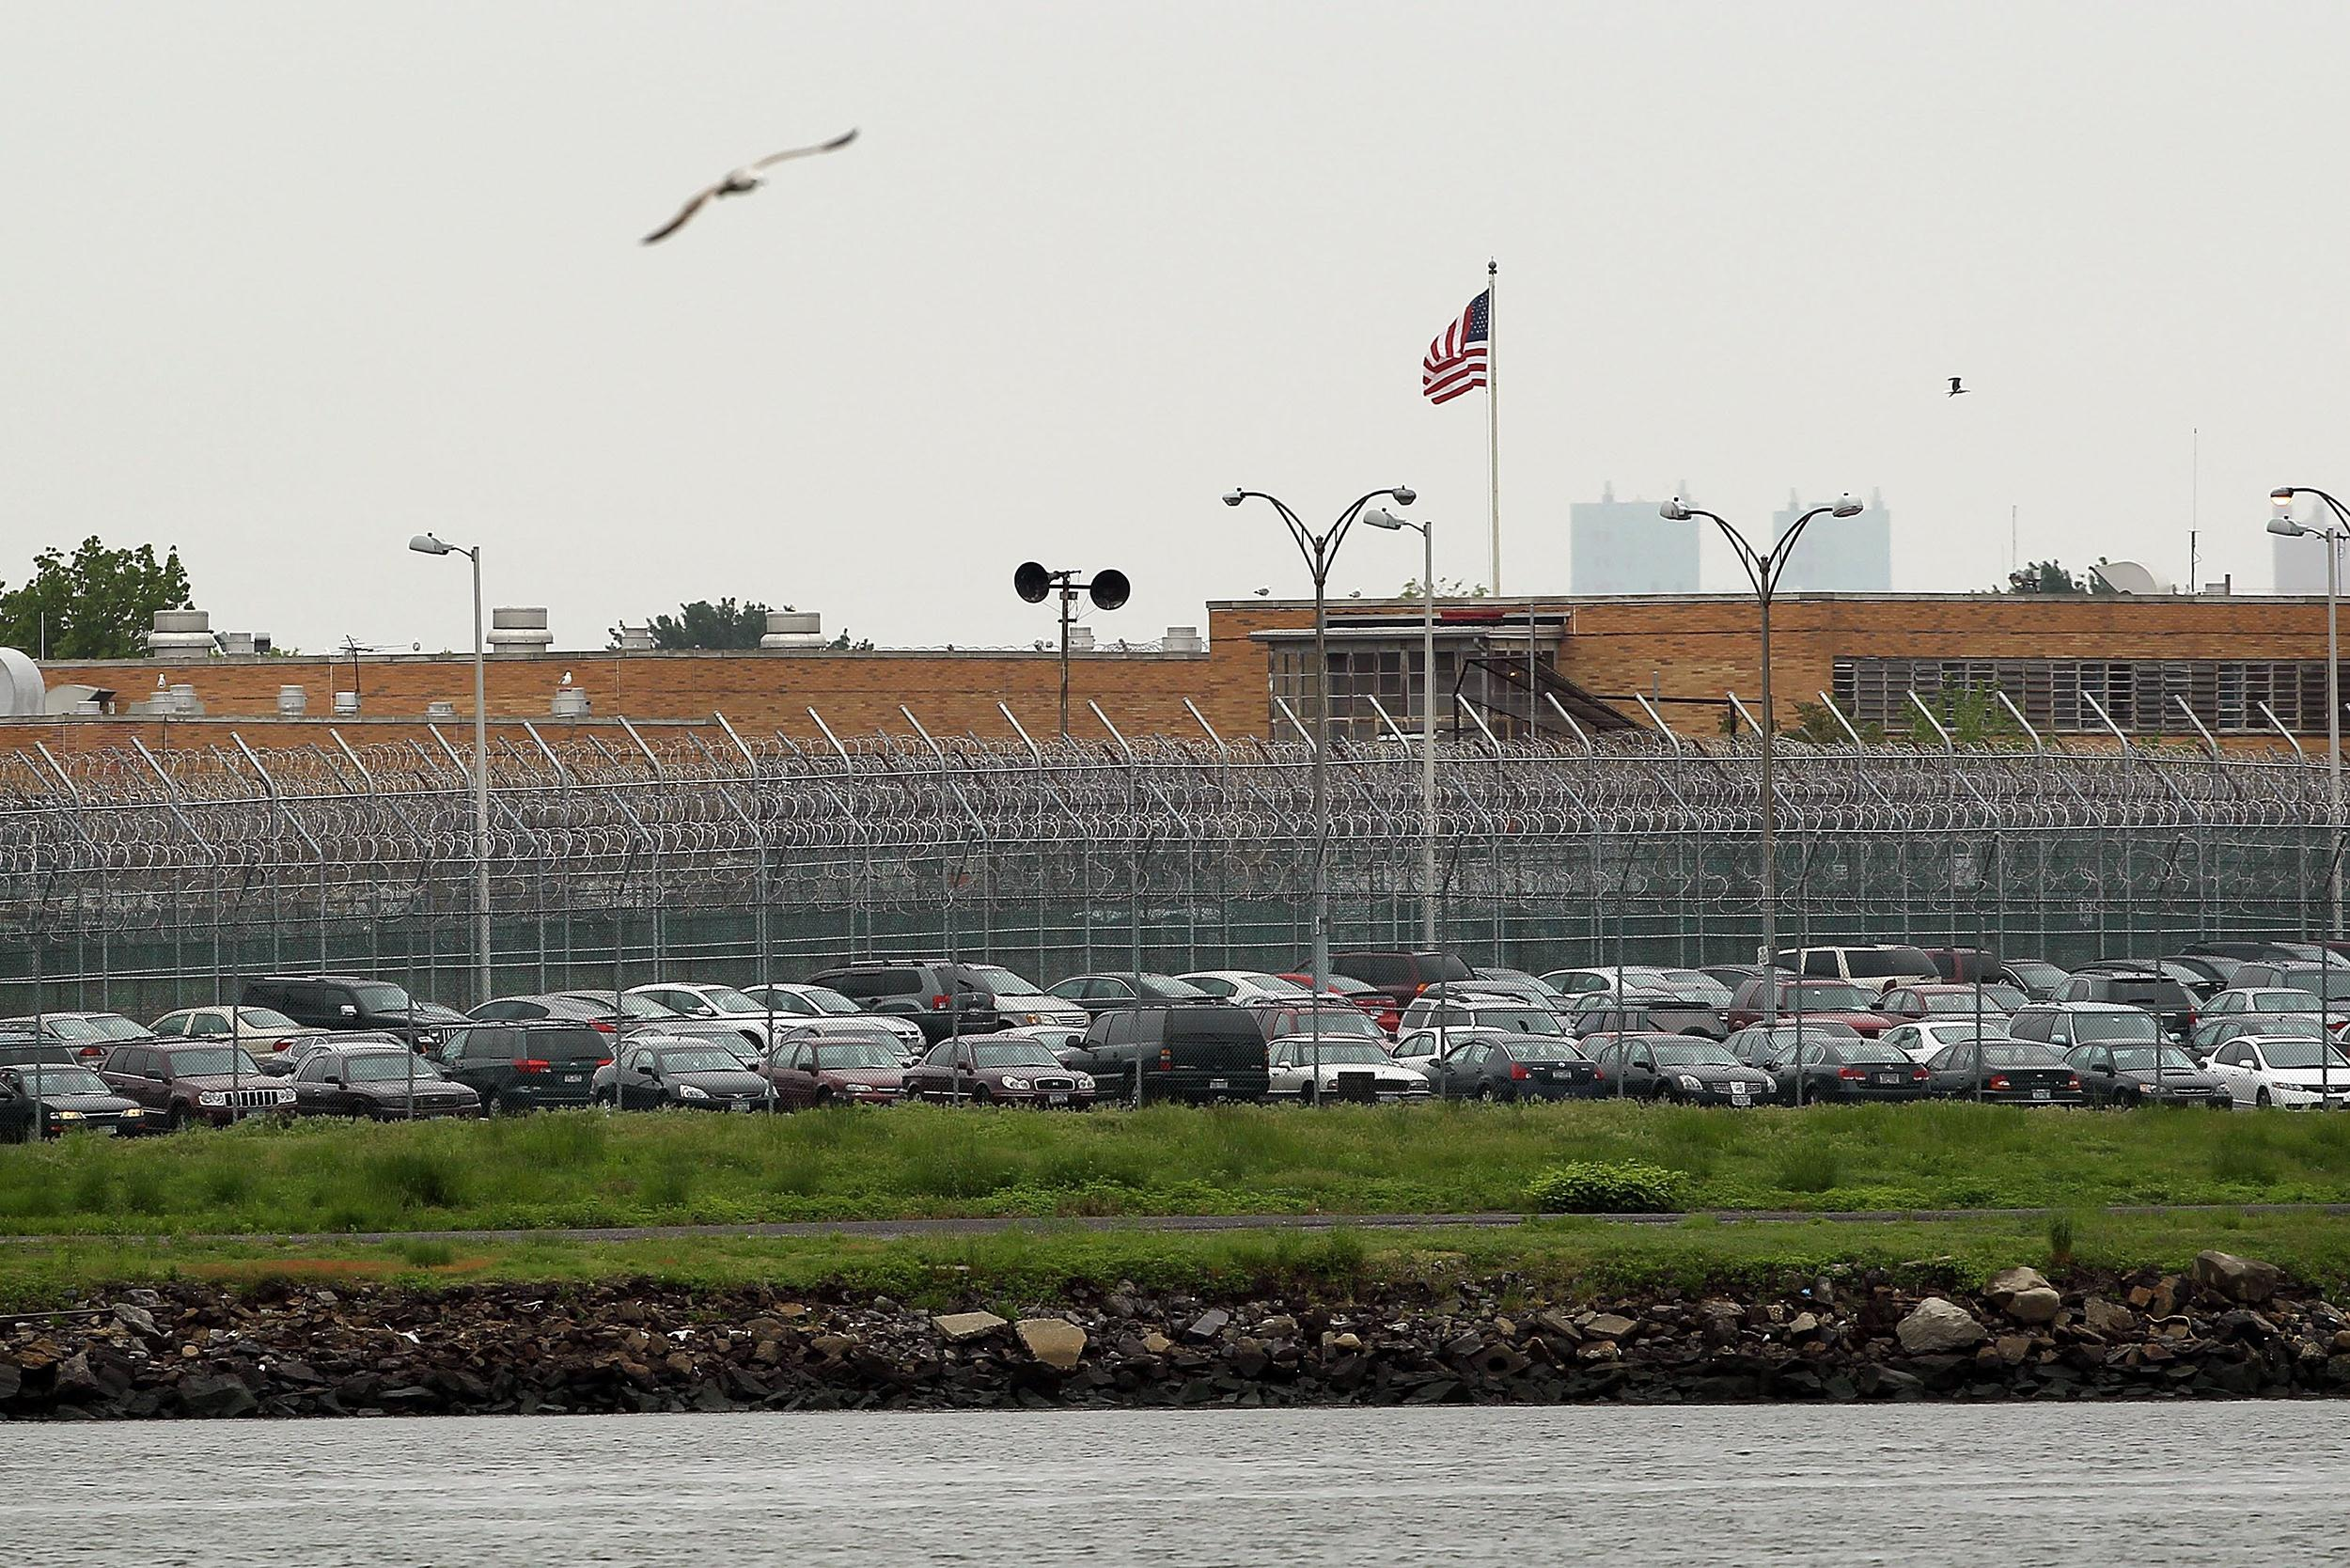 My First Visit to Rikers Island